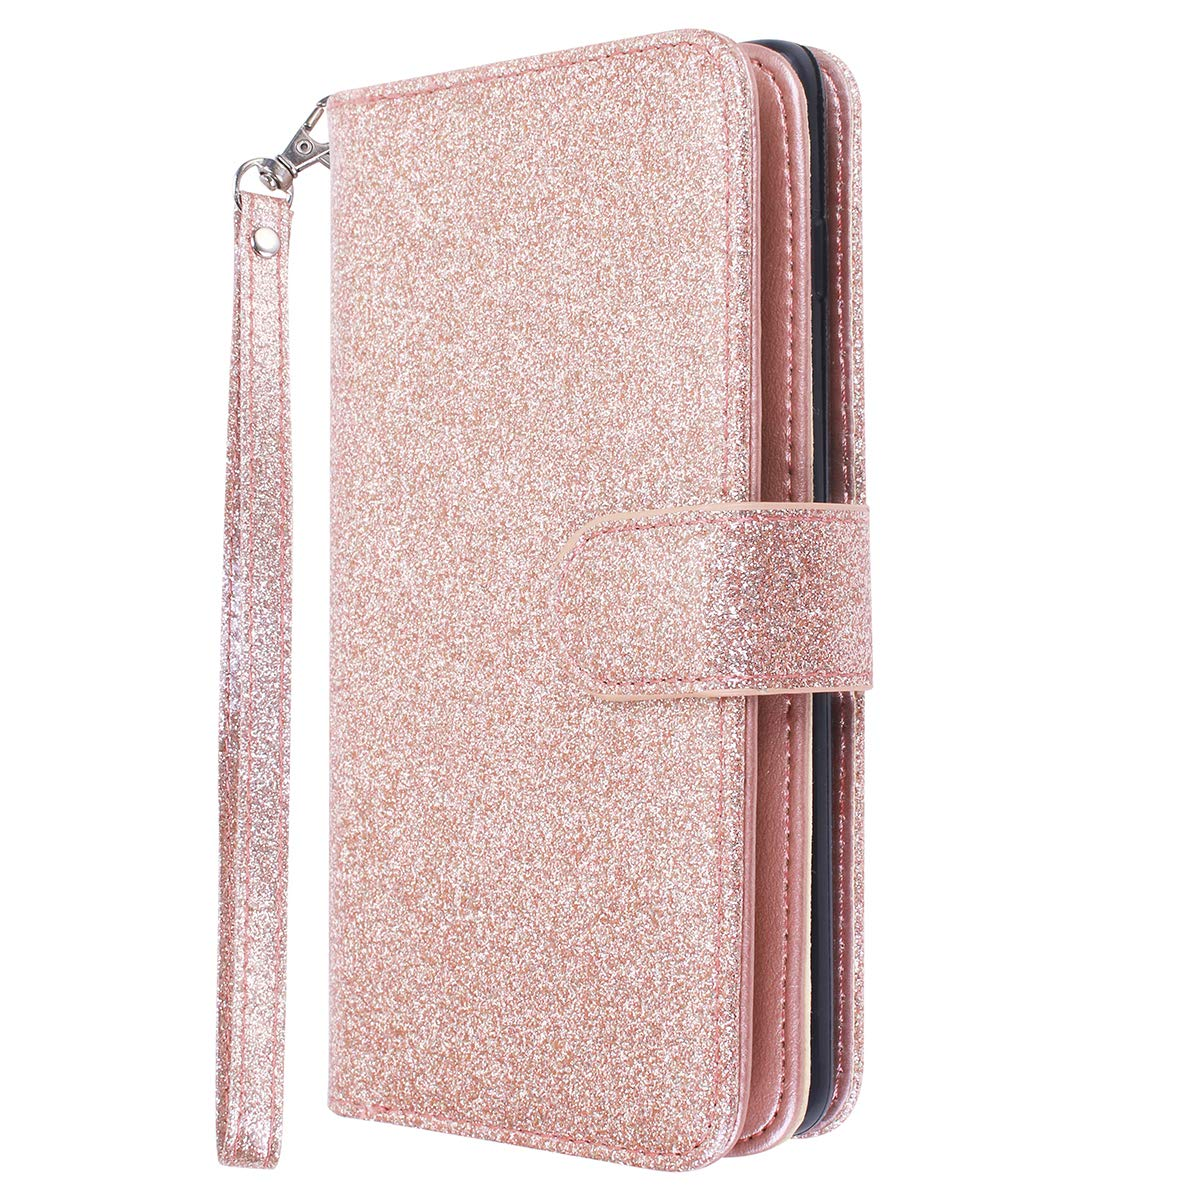 Galaxy S10/S10+ Wallet Case Cute PU Leather Flip Wallet Cover with 9 Card Slots Magnetic Snap Closure